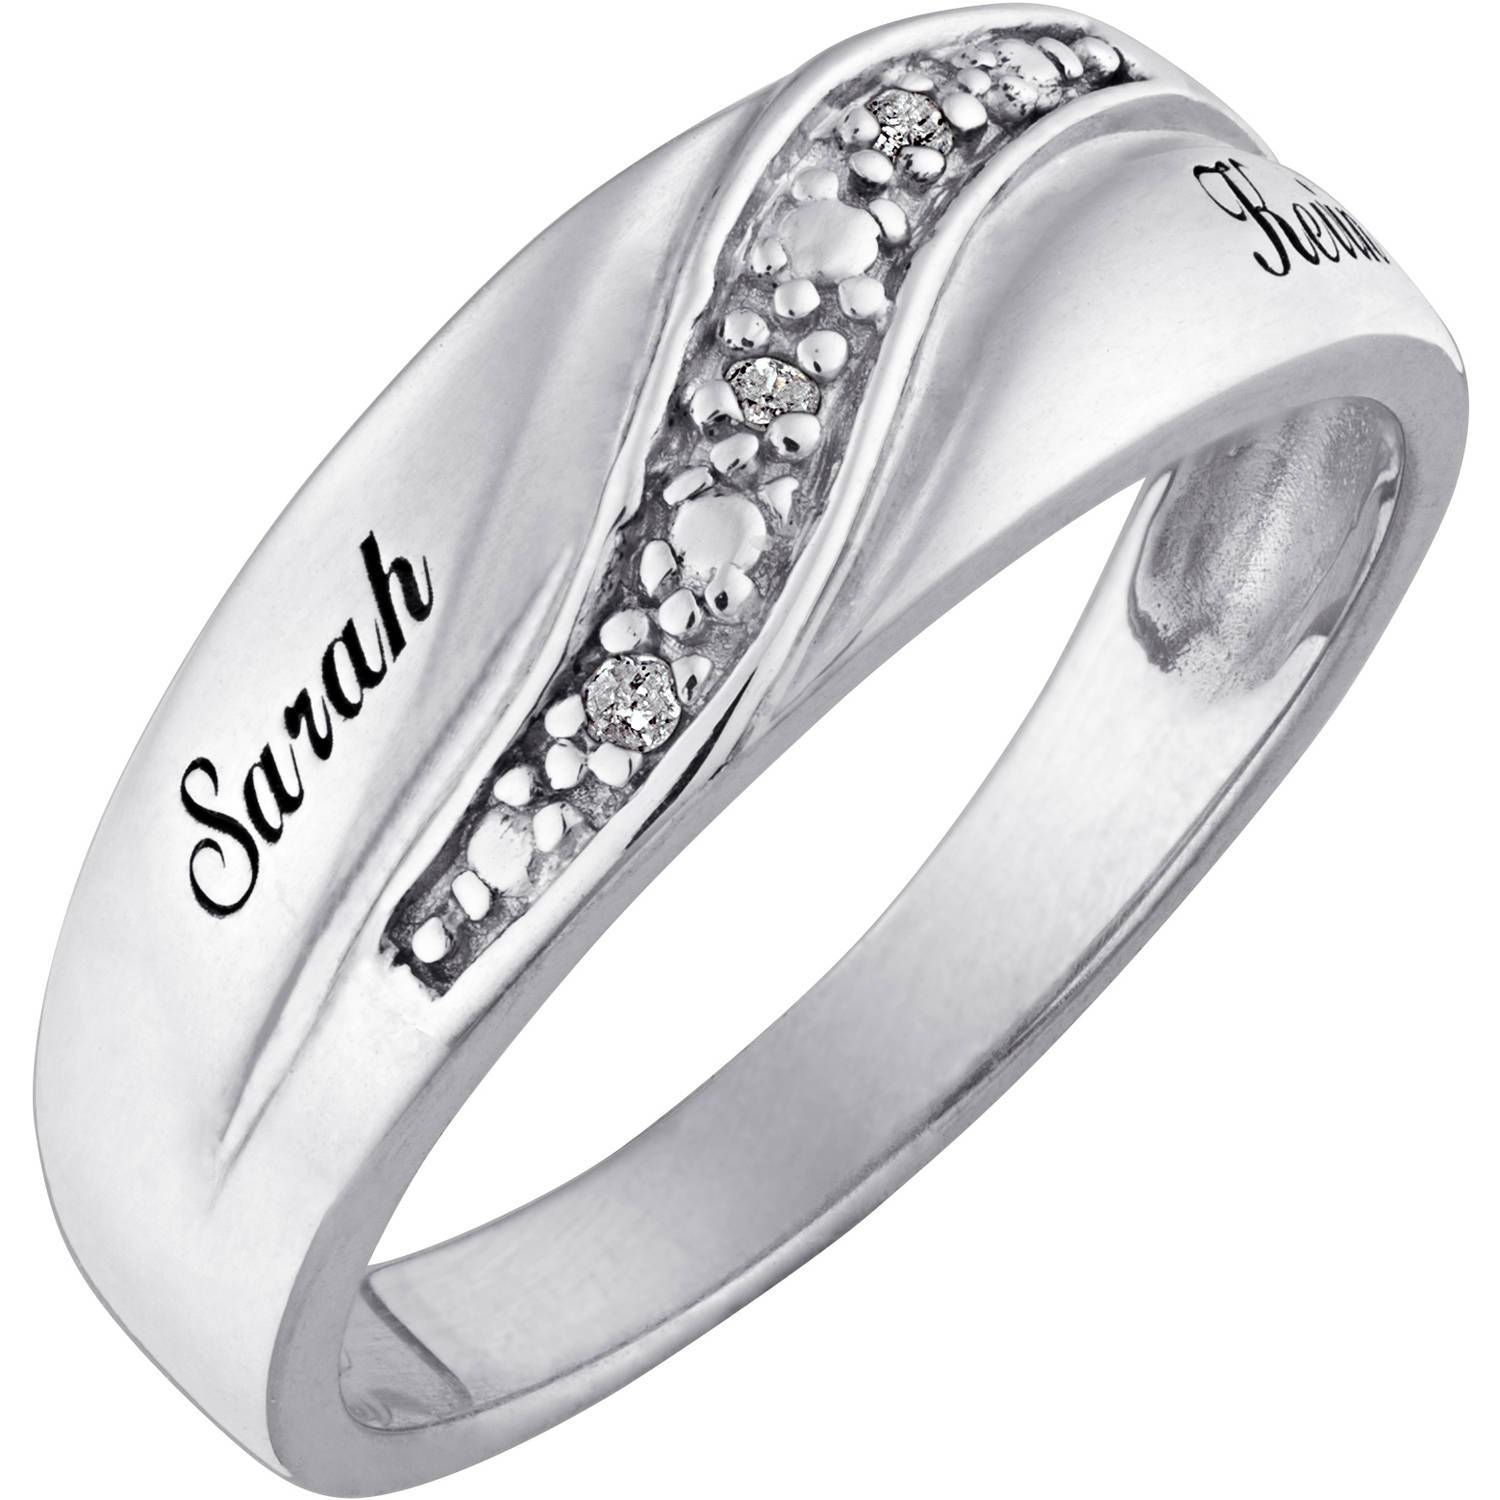 Personalized Sterling Silver Mens Diamond Accent Name Wedding Band Intended For Men's Wedding Bands At Walmart (View 12 of 15)